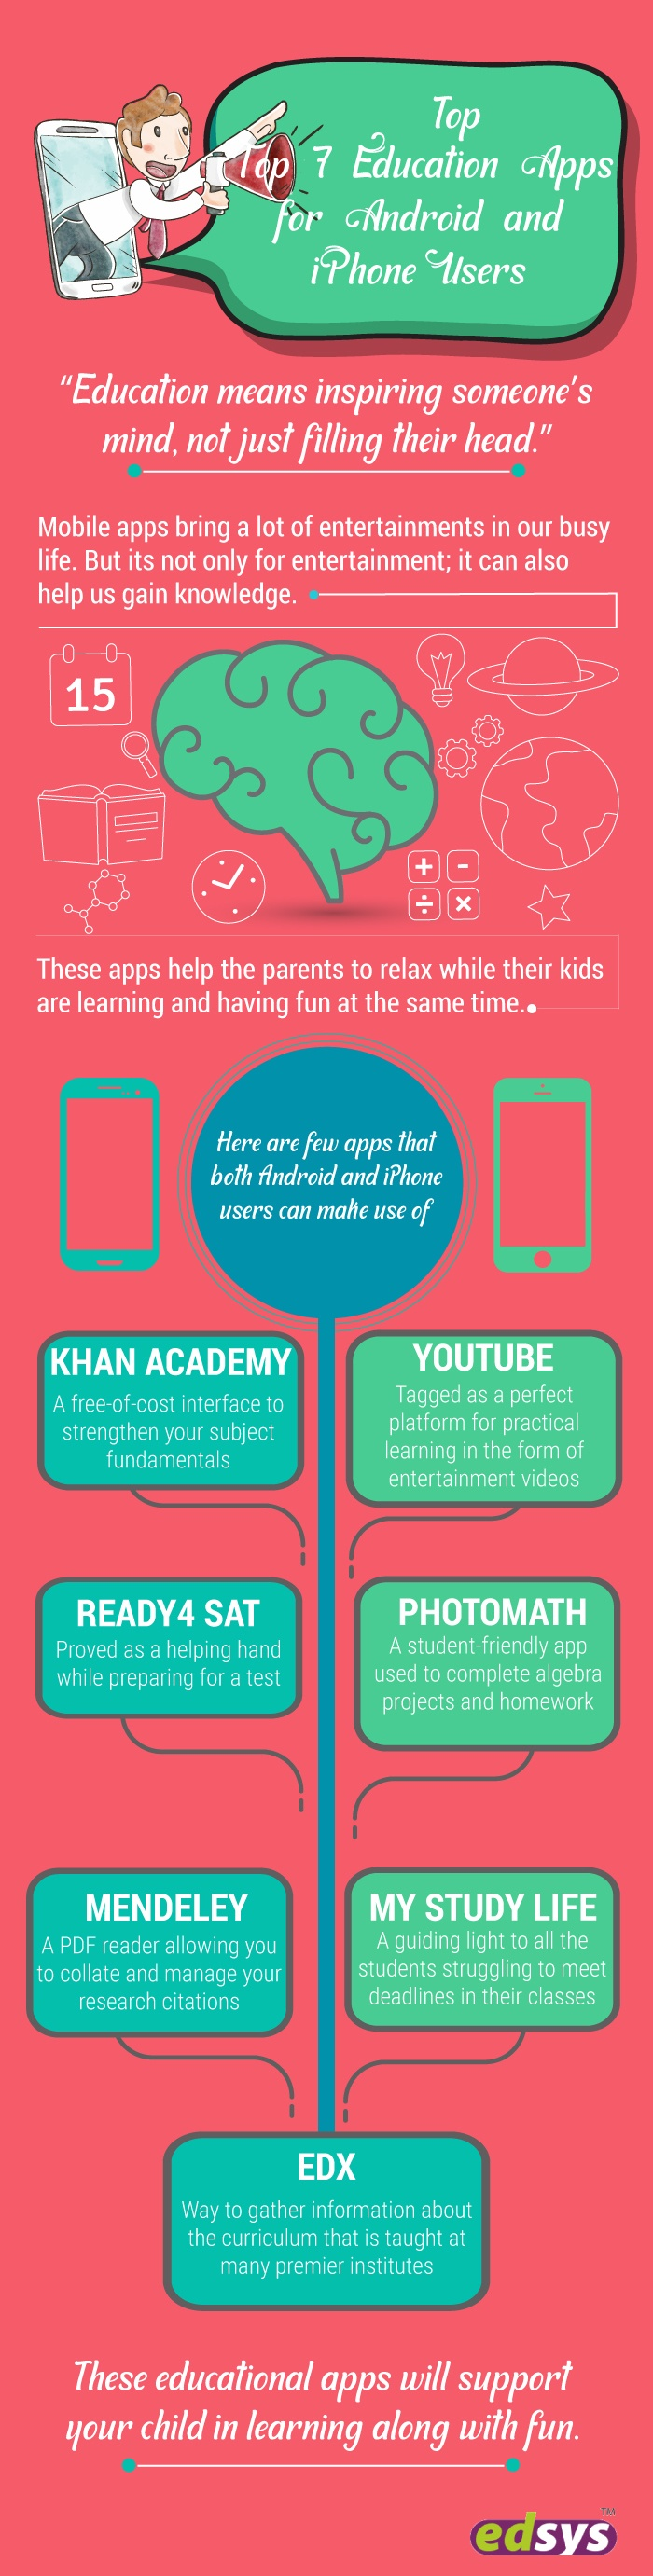 Top 7 Educational Apps for Android and iPhone Users Infographic